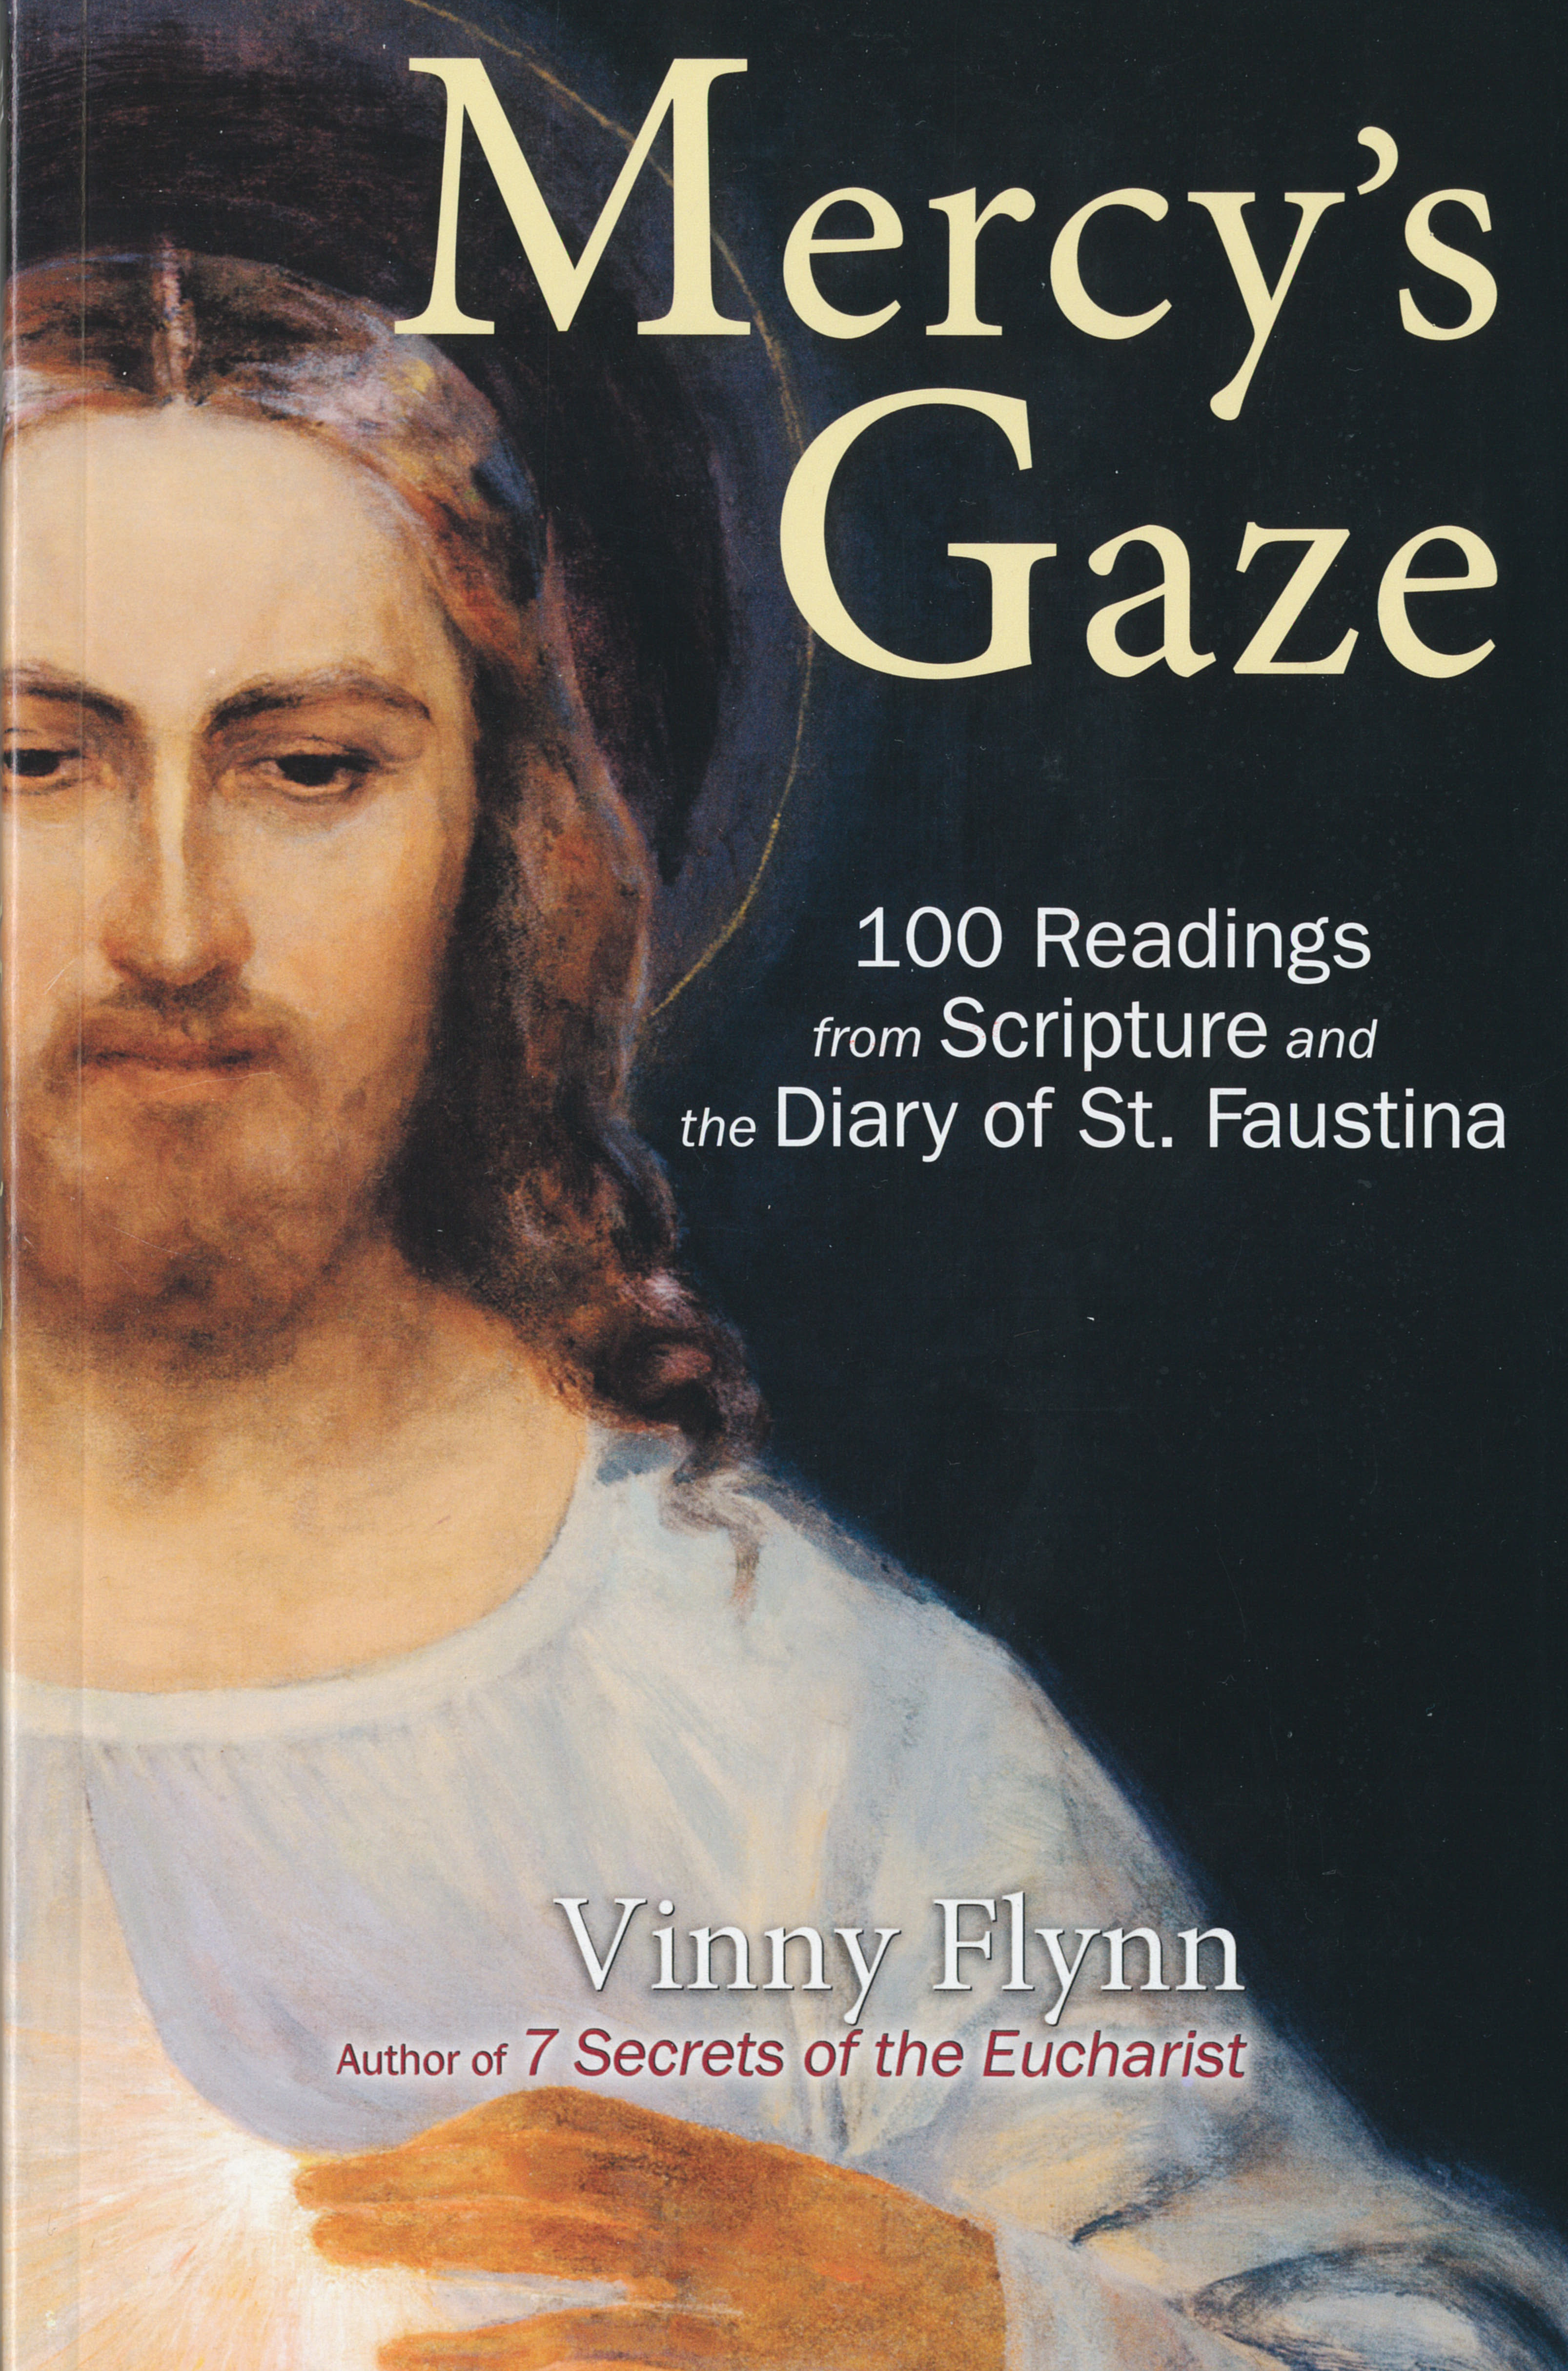 Mercy's Gaze: 100 Readings from Scripture and the Diary of St. Faustina by Vinny Flynn 9781596142916 Divine Mercy Book